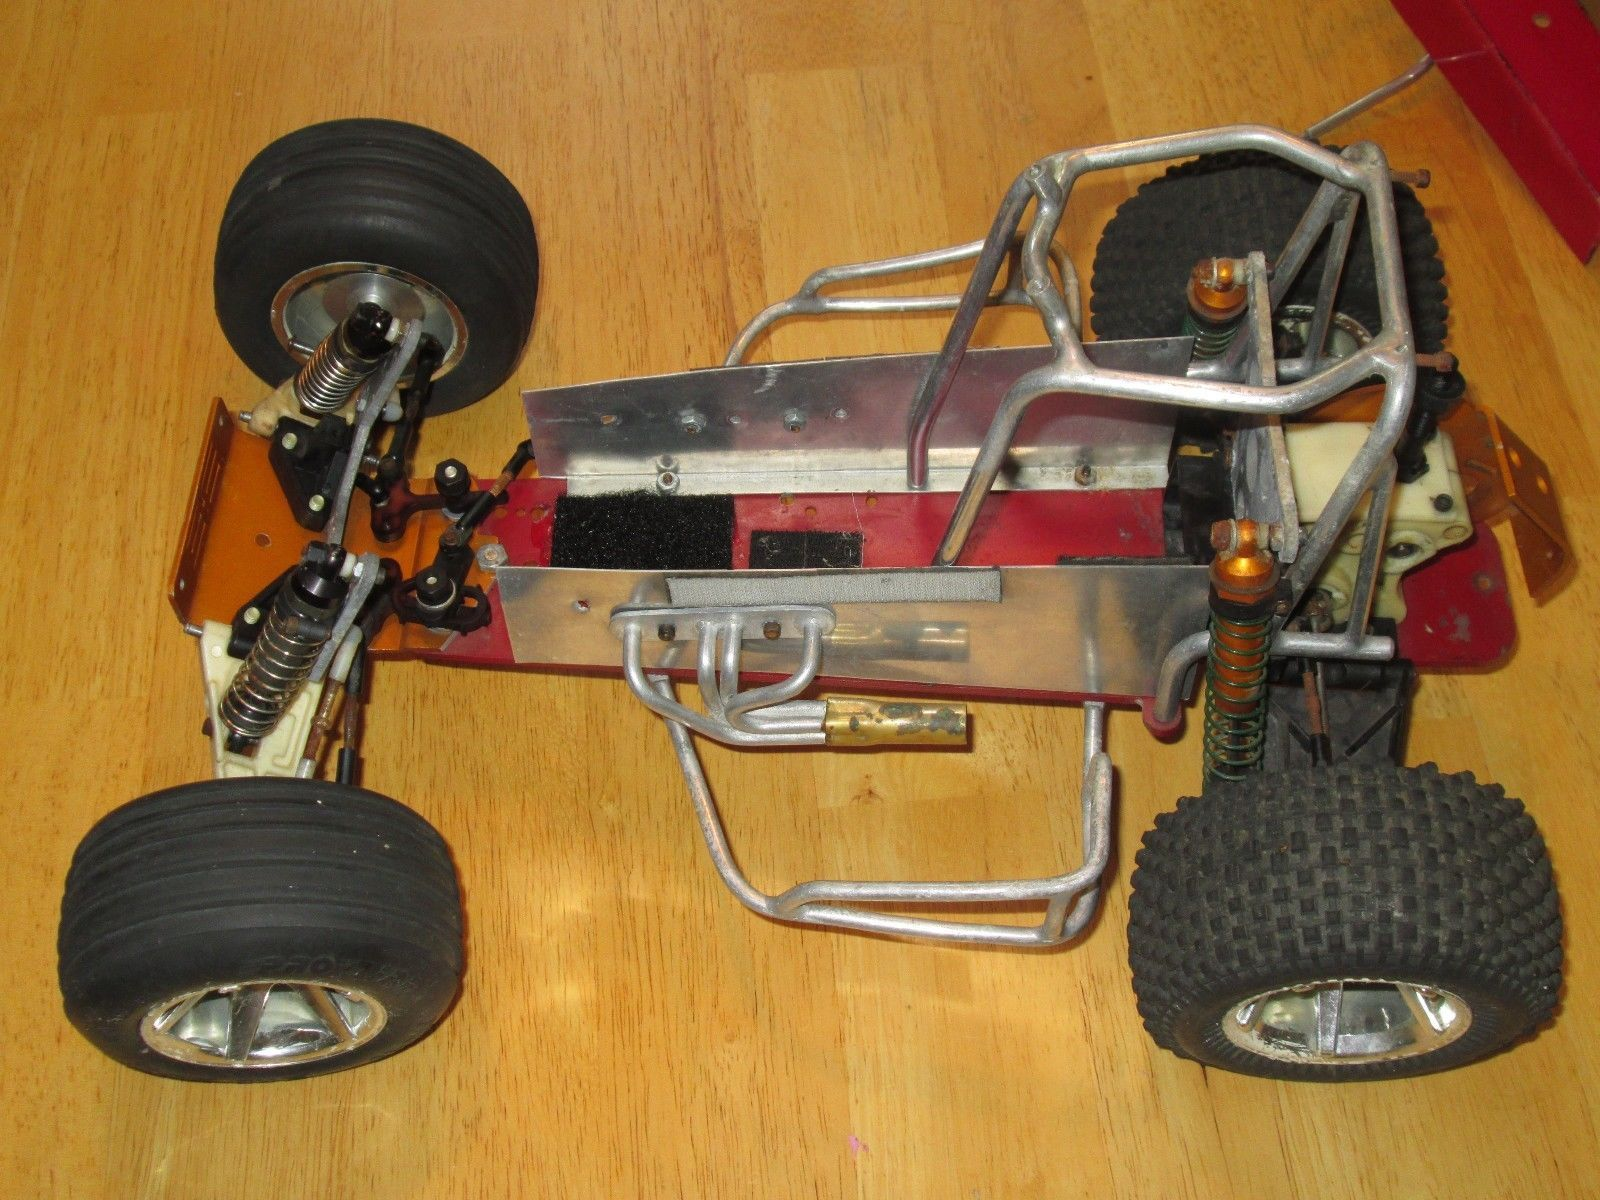 Vintage Associated Gold Pan RC Oval Track Conversion Hot